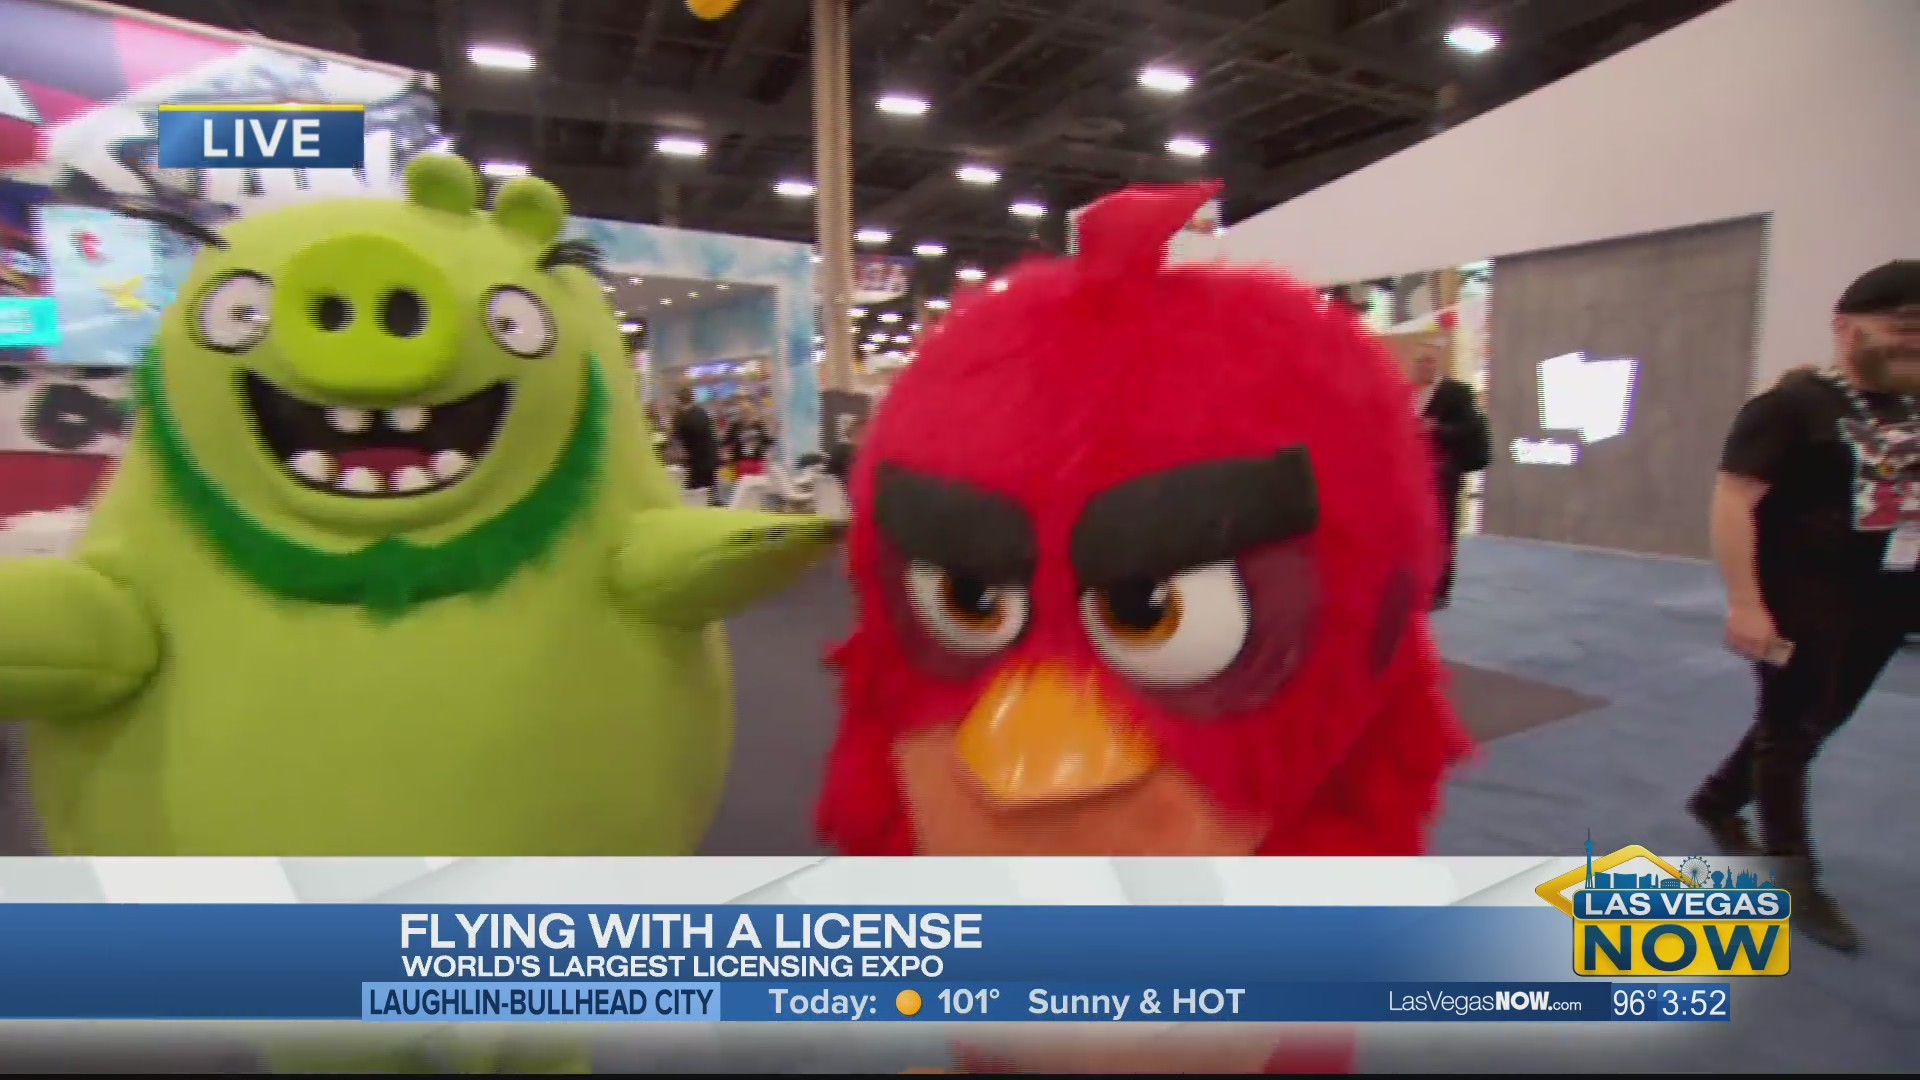 Favorite mascots and characters have taken over Mandalay Bay